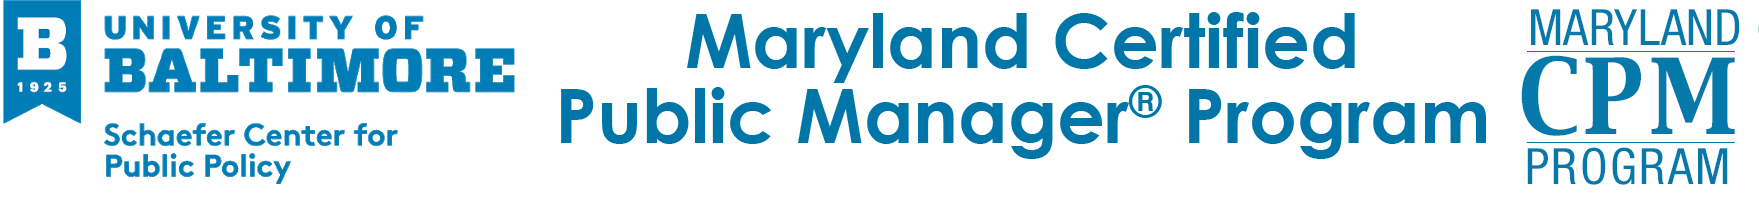 Maryland Certified Public Manager® Program Logo